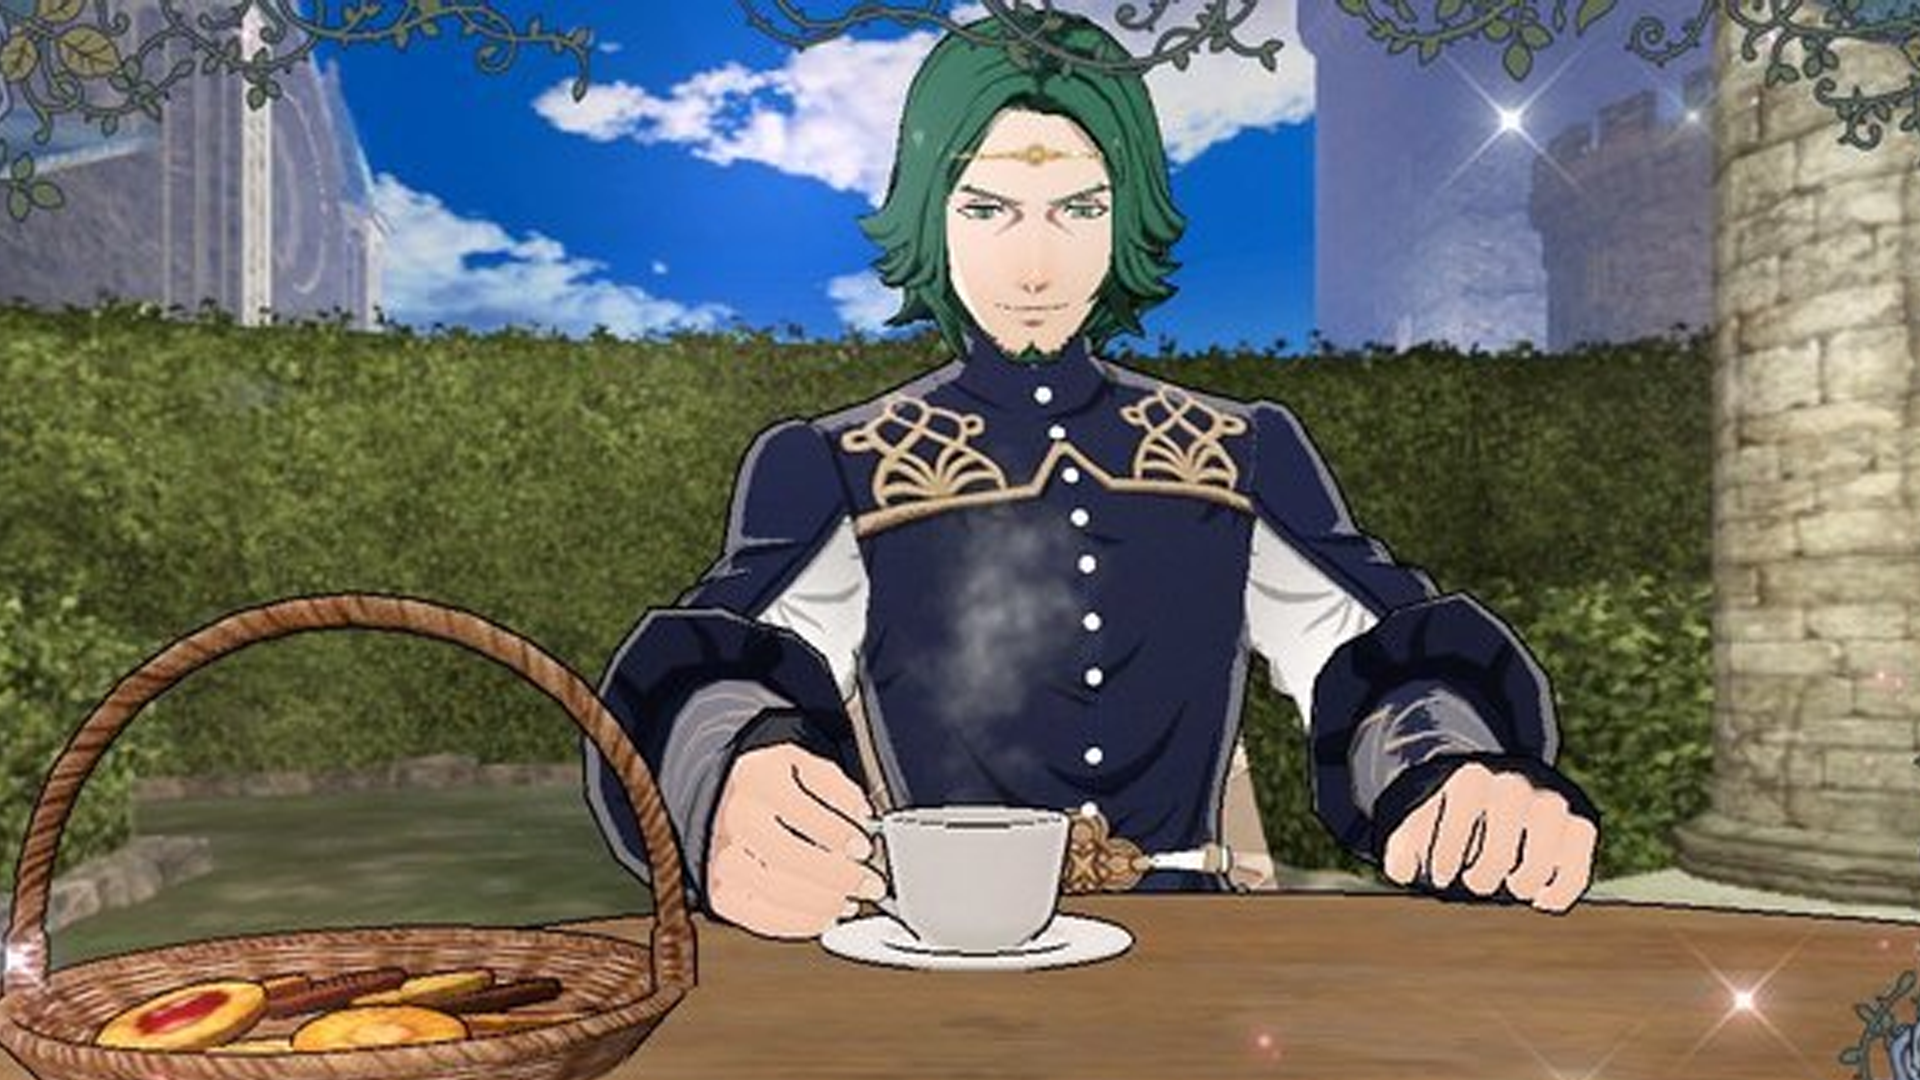 The Voice Actor For Seteth In Fire Emblem: Three Houses Is Now Performing Popular Seteth Memes